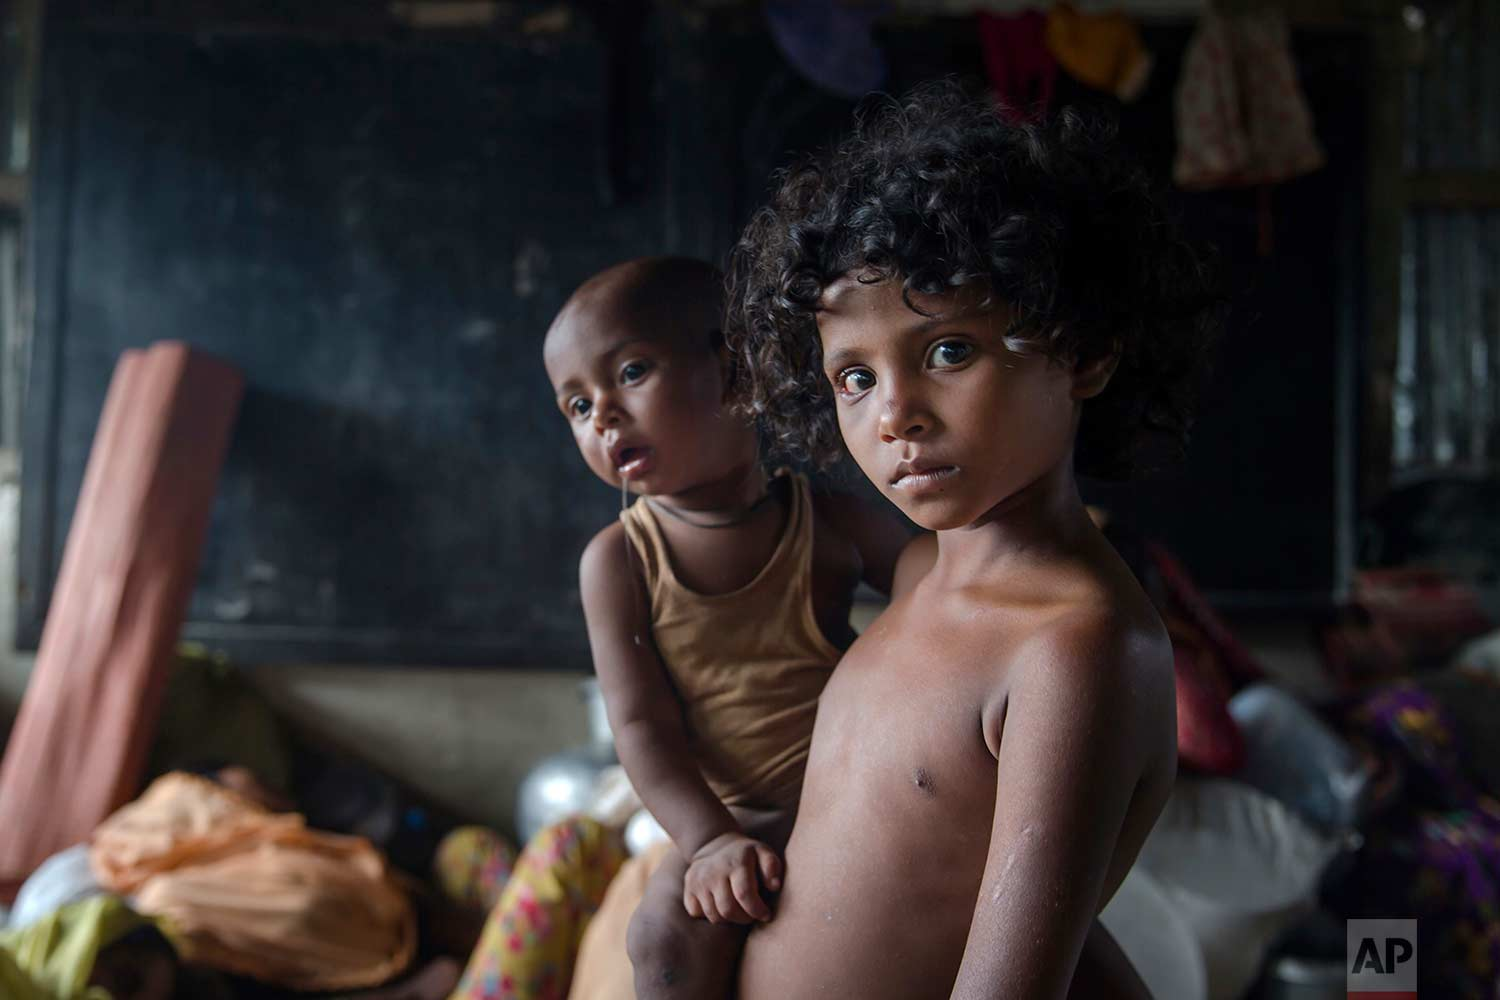 A Rohingya Muslim girl Azra, who crossed over from Myanmar into Bangladesh, holds her little brother Luqman and waits for their family to be registered as refugees after which they will be allowed to proceed to build a shelter in Kutupalong refugee camp, Bangladesh, Friday, Oct. 20, 2017.(AP Photo/Dar Yasin)